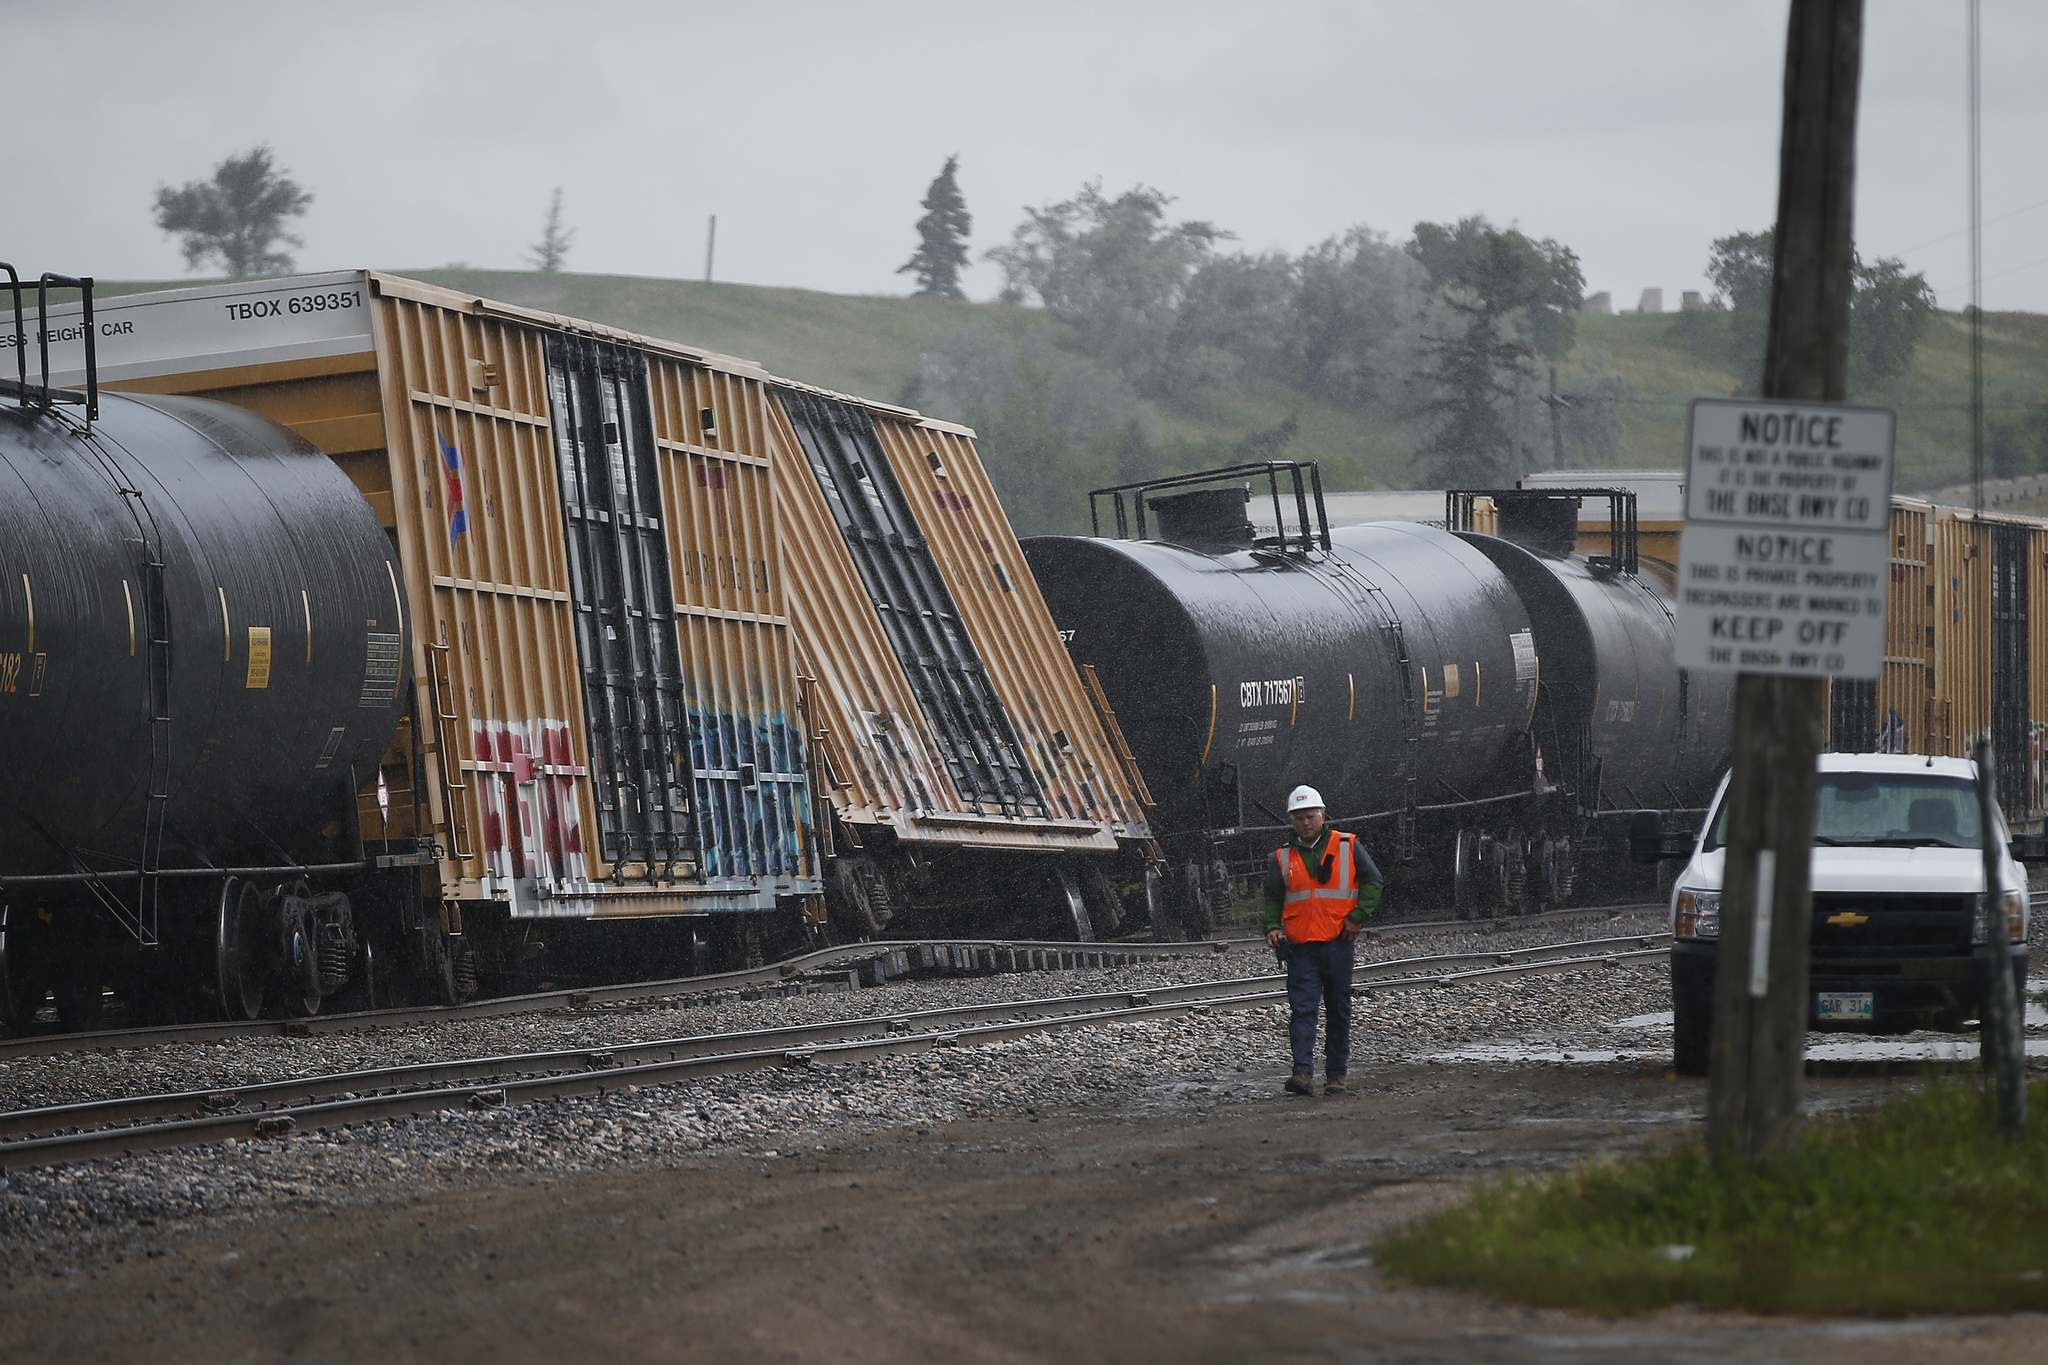 JOHN WOODS / WINNIPEG FREE PRESS</p><p>Three cars on a BNSF train derailed on a track that runs between Empress and Strathcona in Winnipeg Wednesday closing Sargent Ave.</p>